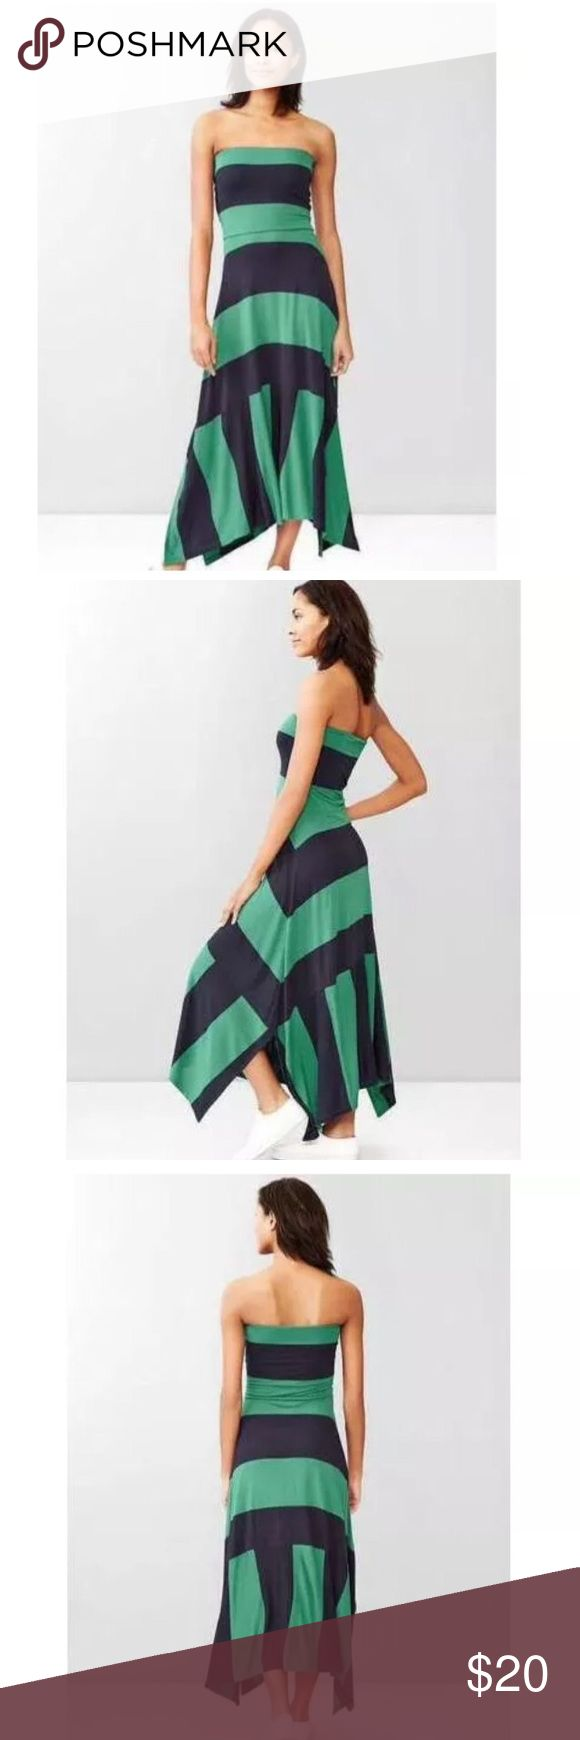 Gap Green & Navy Striped 4in1 Trapeze Maxi Dress GAP NEW STRIPED 4 IN 1 MAXI DRESS Green/Navy  Condition: New; inside label is marked to prevent retail returns  Details: A dress with a twist. Wear it 4 ways: Strapless maxi, strapless midi, strapless mini, or foldover maxi skirt. Smooth, stretch jersey with contrast top. Strapless. Easy, straight silhouette can be styled four ways. GAP Dresses Strapless